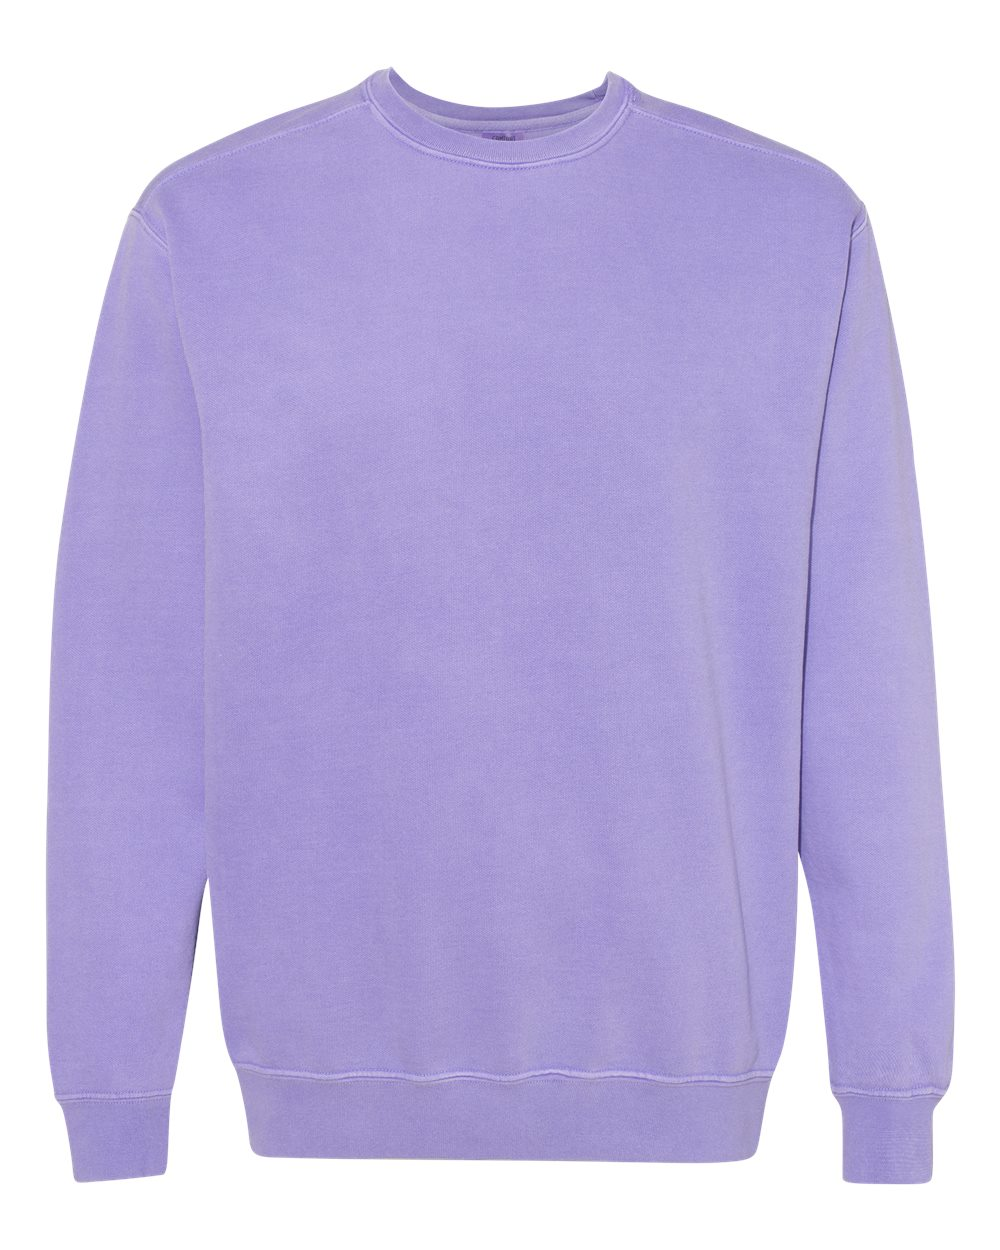 Comfort-Colors-Mens-Garment-Dyed-Ringspun-Crewneck-Sweatshirt-1566-up-to-3XL miniature 63